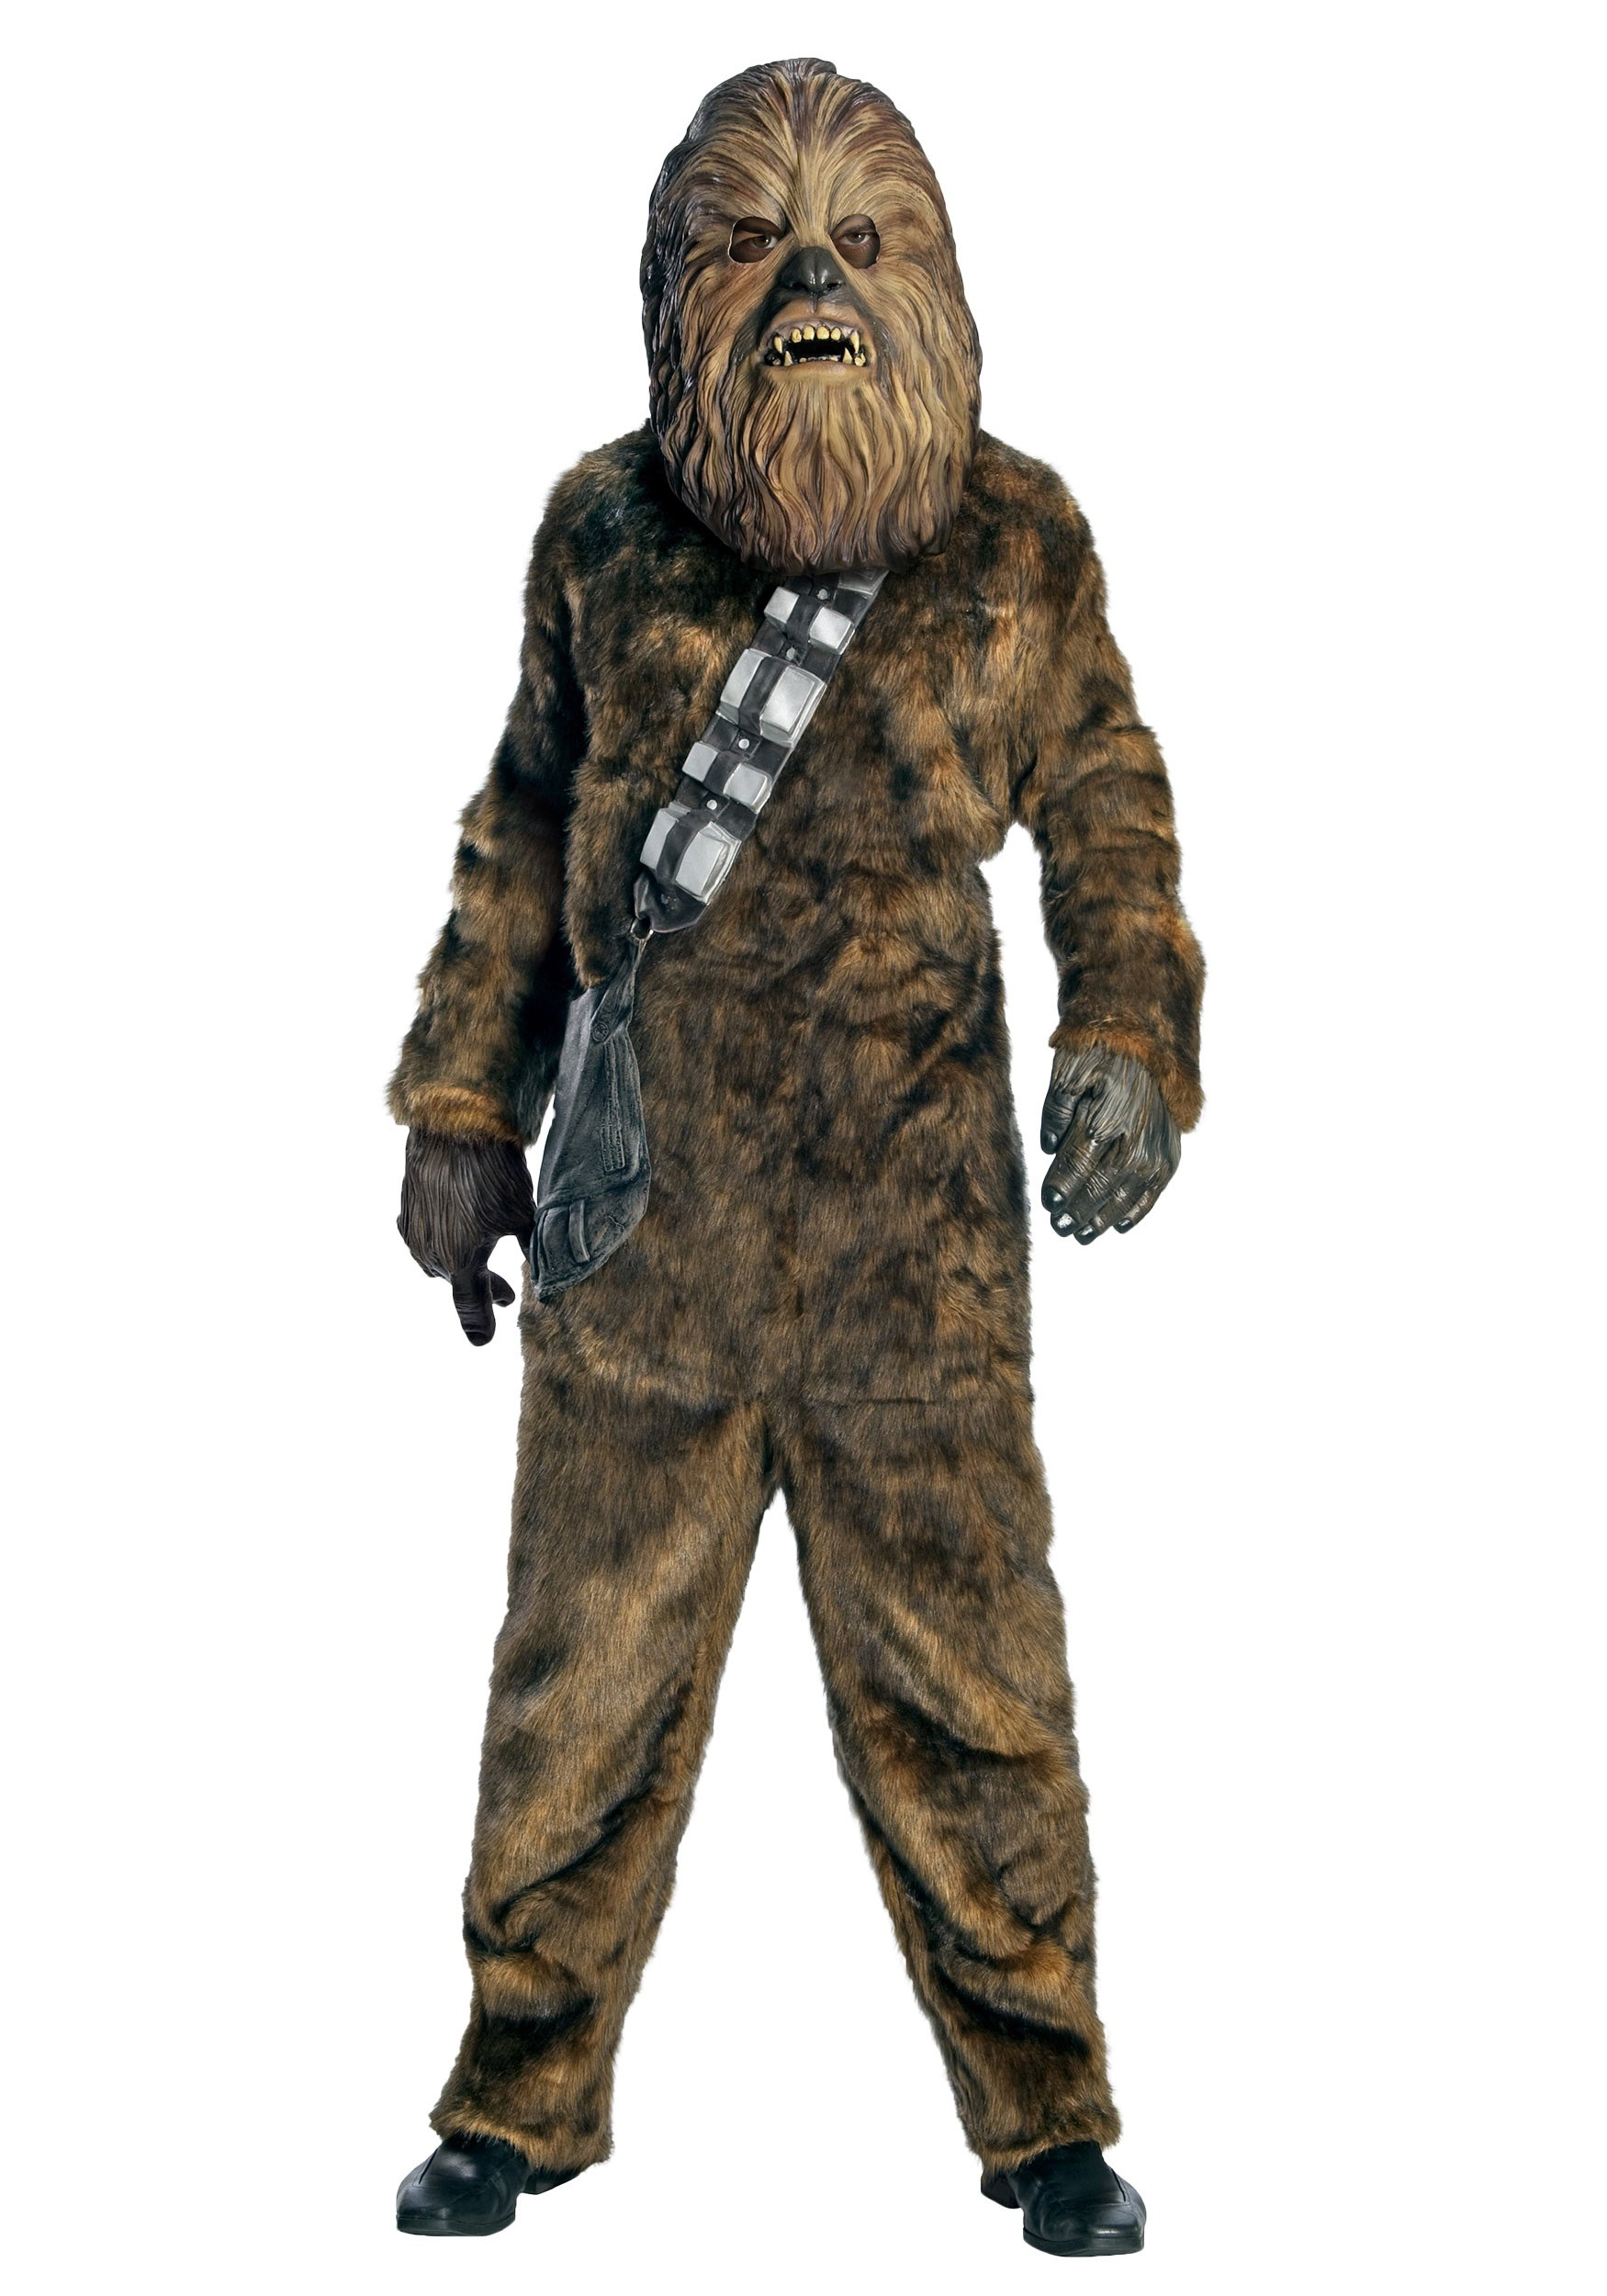 Chewbacca Deluxe Costume  sc 1 st  Discount Star Wars Costumes & Deluxe Chewbacca Costume - Adult Chewbacca Star Wars Costumes